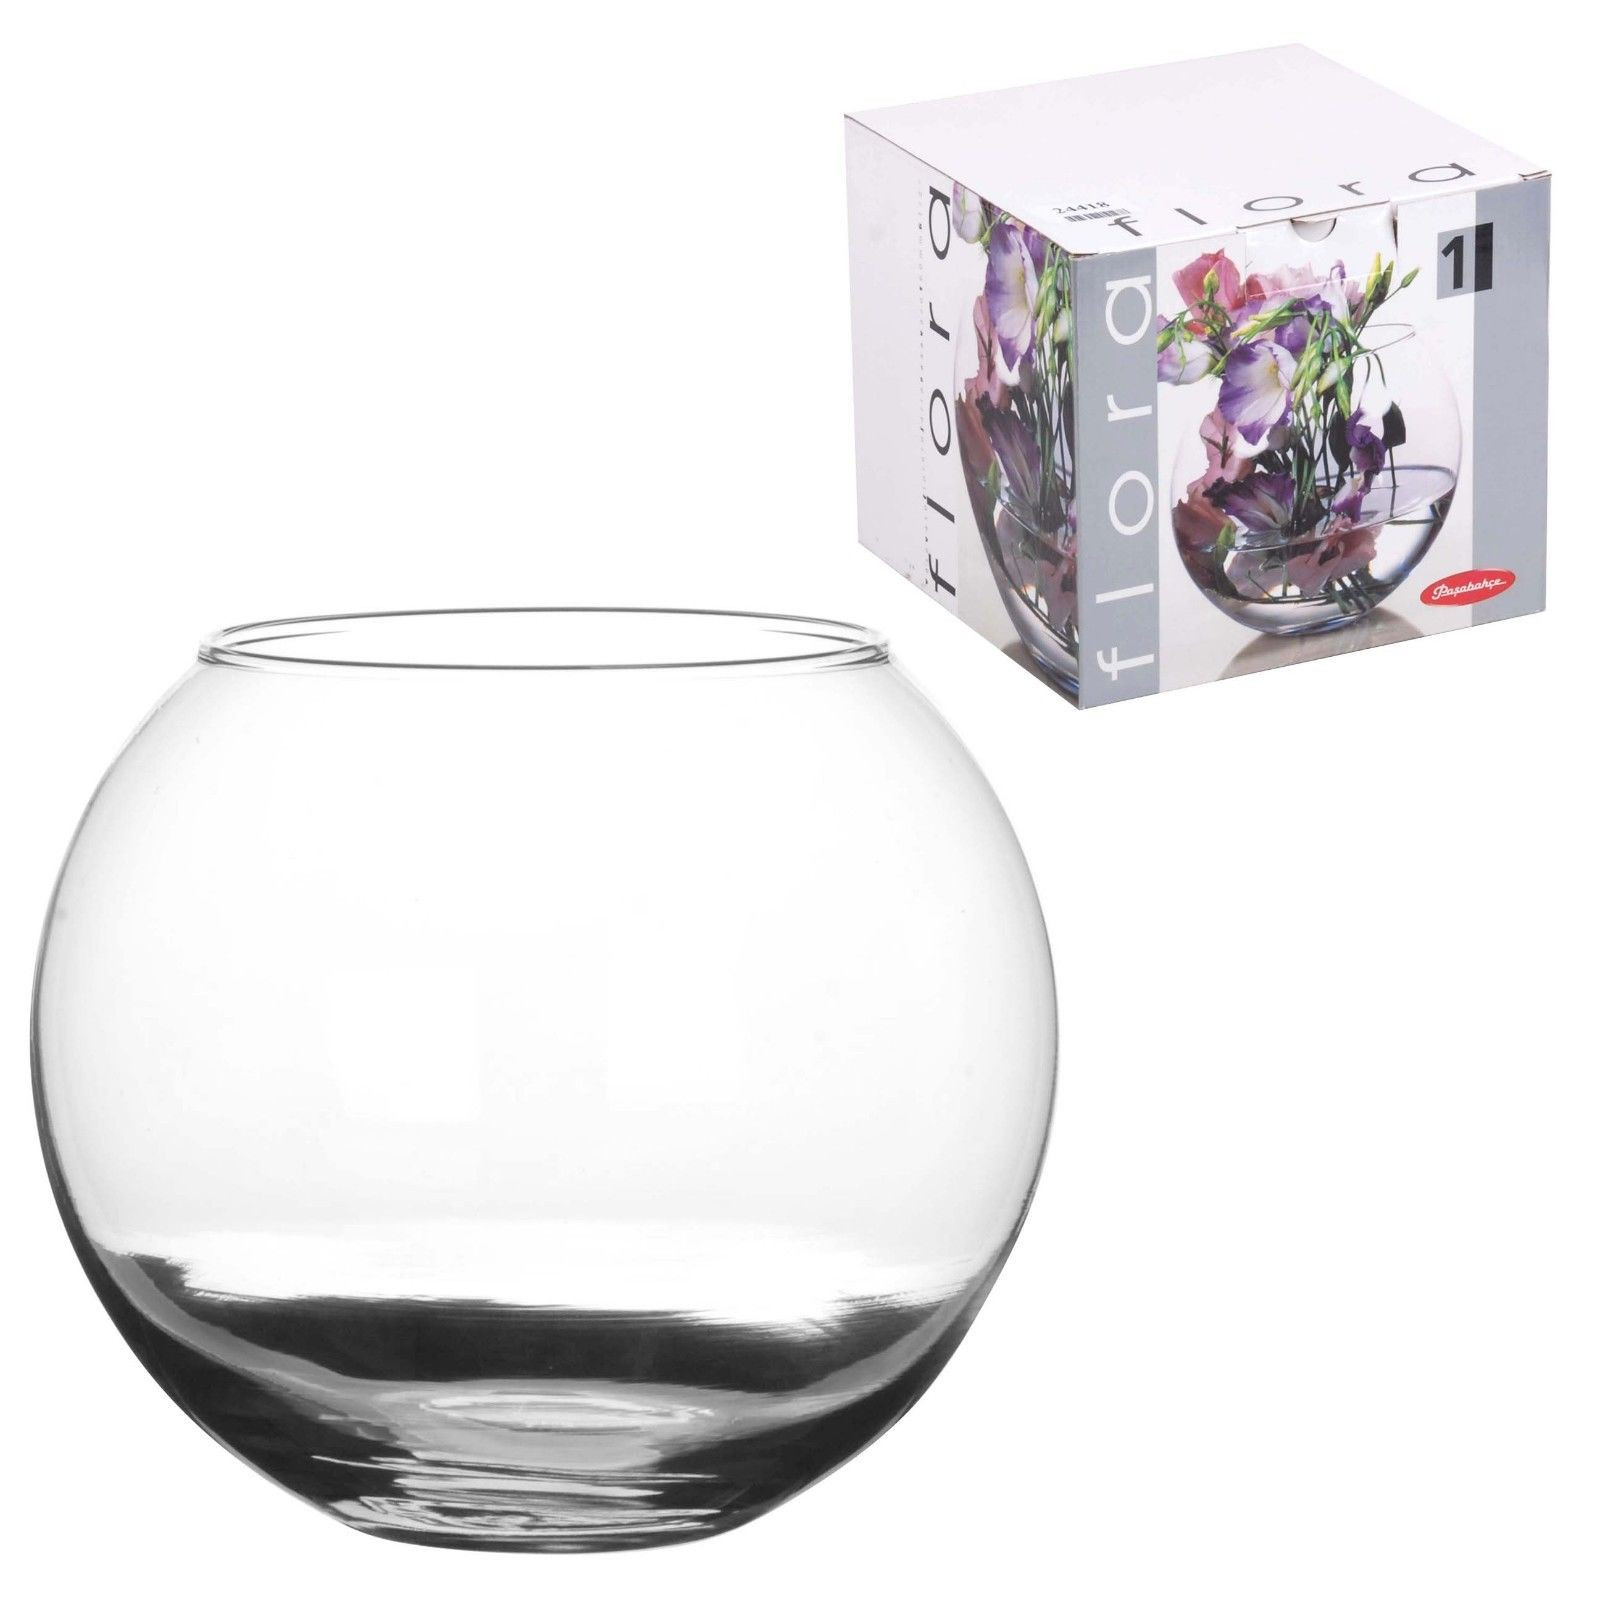 cheap tall clear glass vases of pasabahce glass 16cm round botanica flower vase display fish bowl regarding 16 cm fishbowl bubble ball bowl